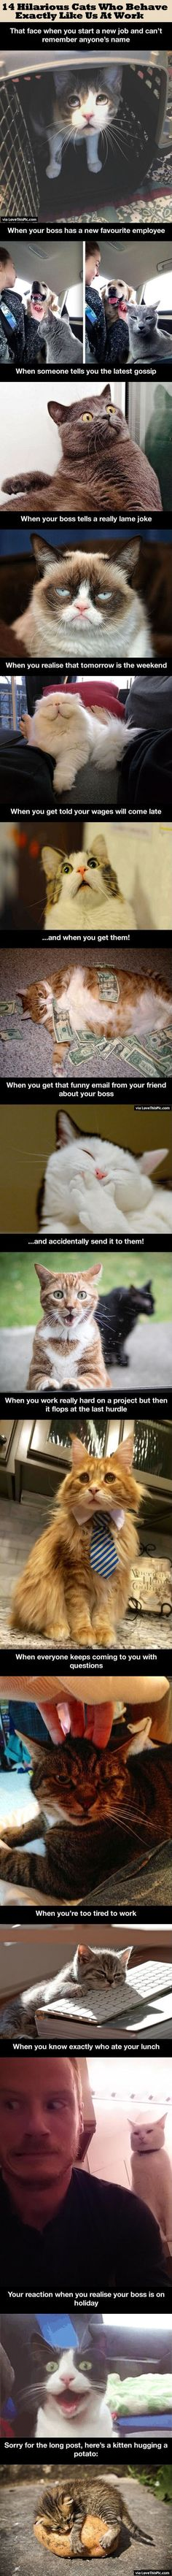 14 Hilarious Cats Who Behave Exactly Like Us At Work cute animals cat cats adorable animal kittens pets kitten funny pictures funny animals funny cats